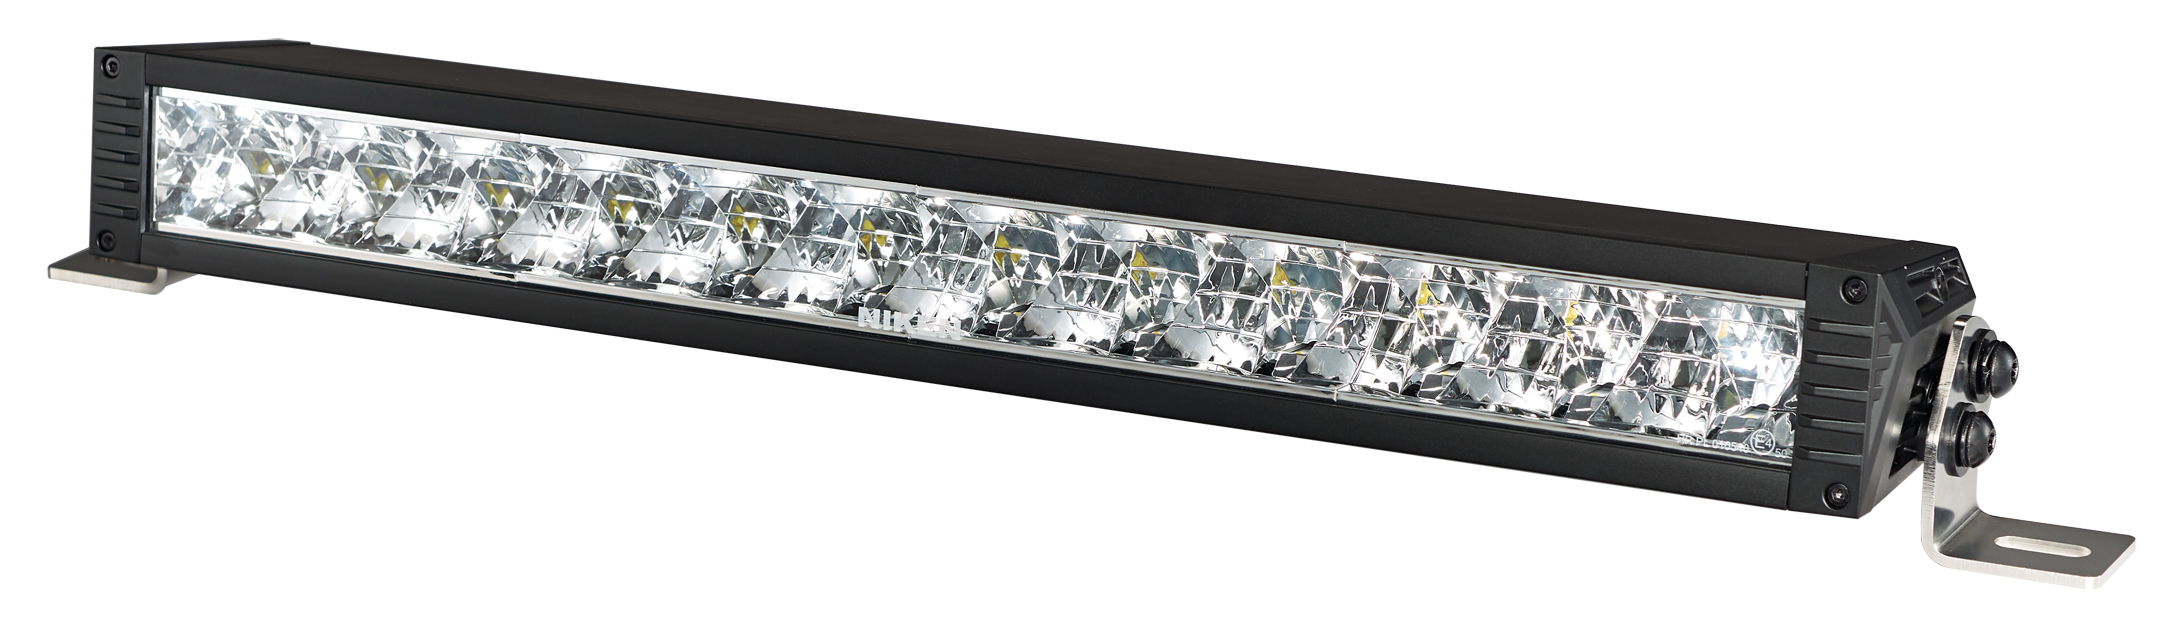 4x4 Pick Up LED Light Bar for Lighting Series made by NIKEN Vehicle Lighting Co., LTD. 首通股份有限公司 - MatchSupplier.com